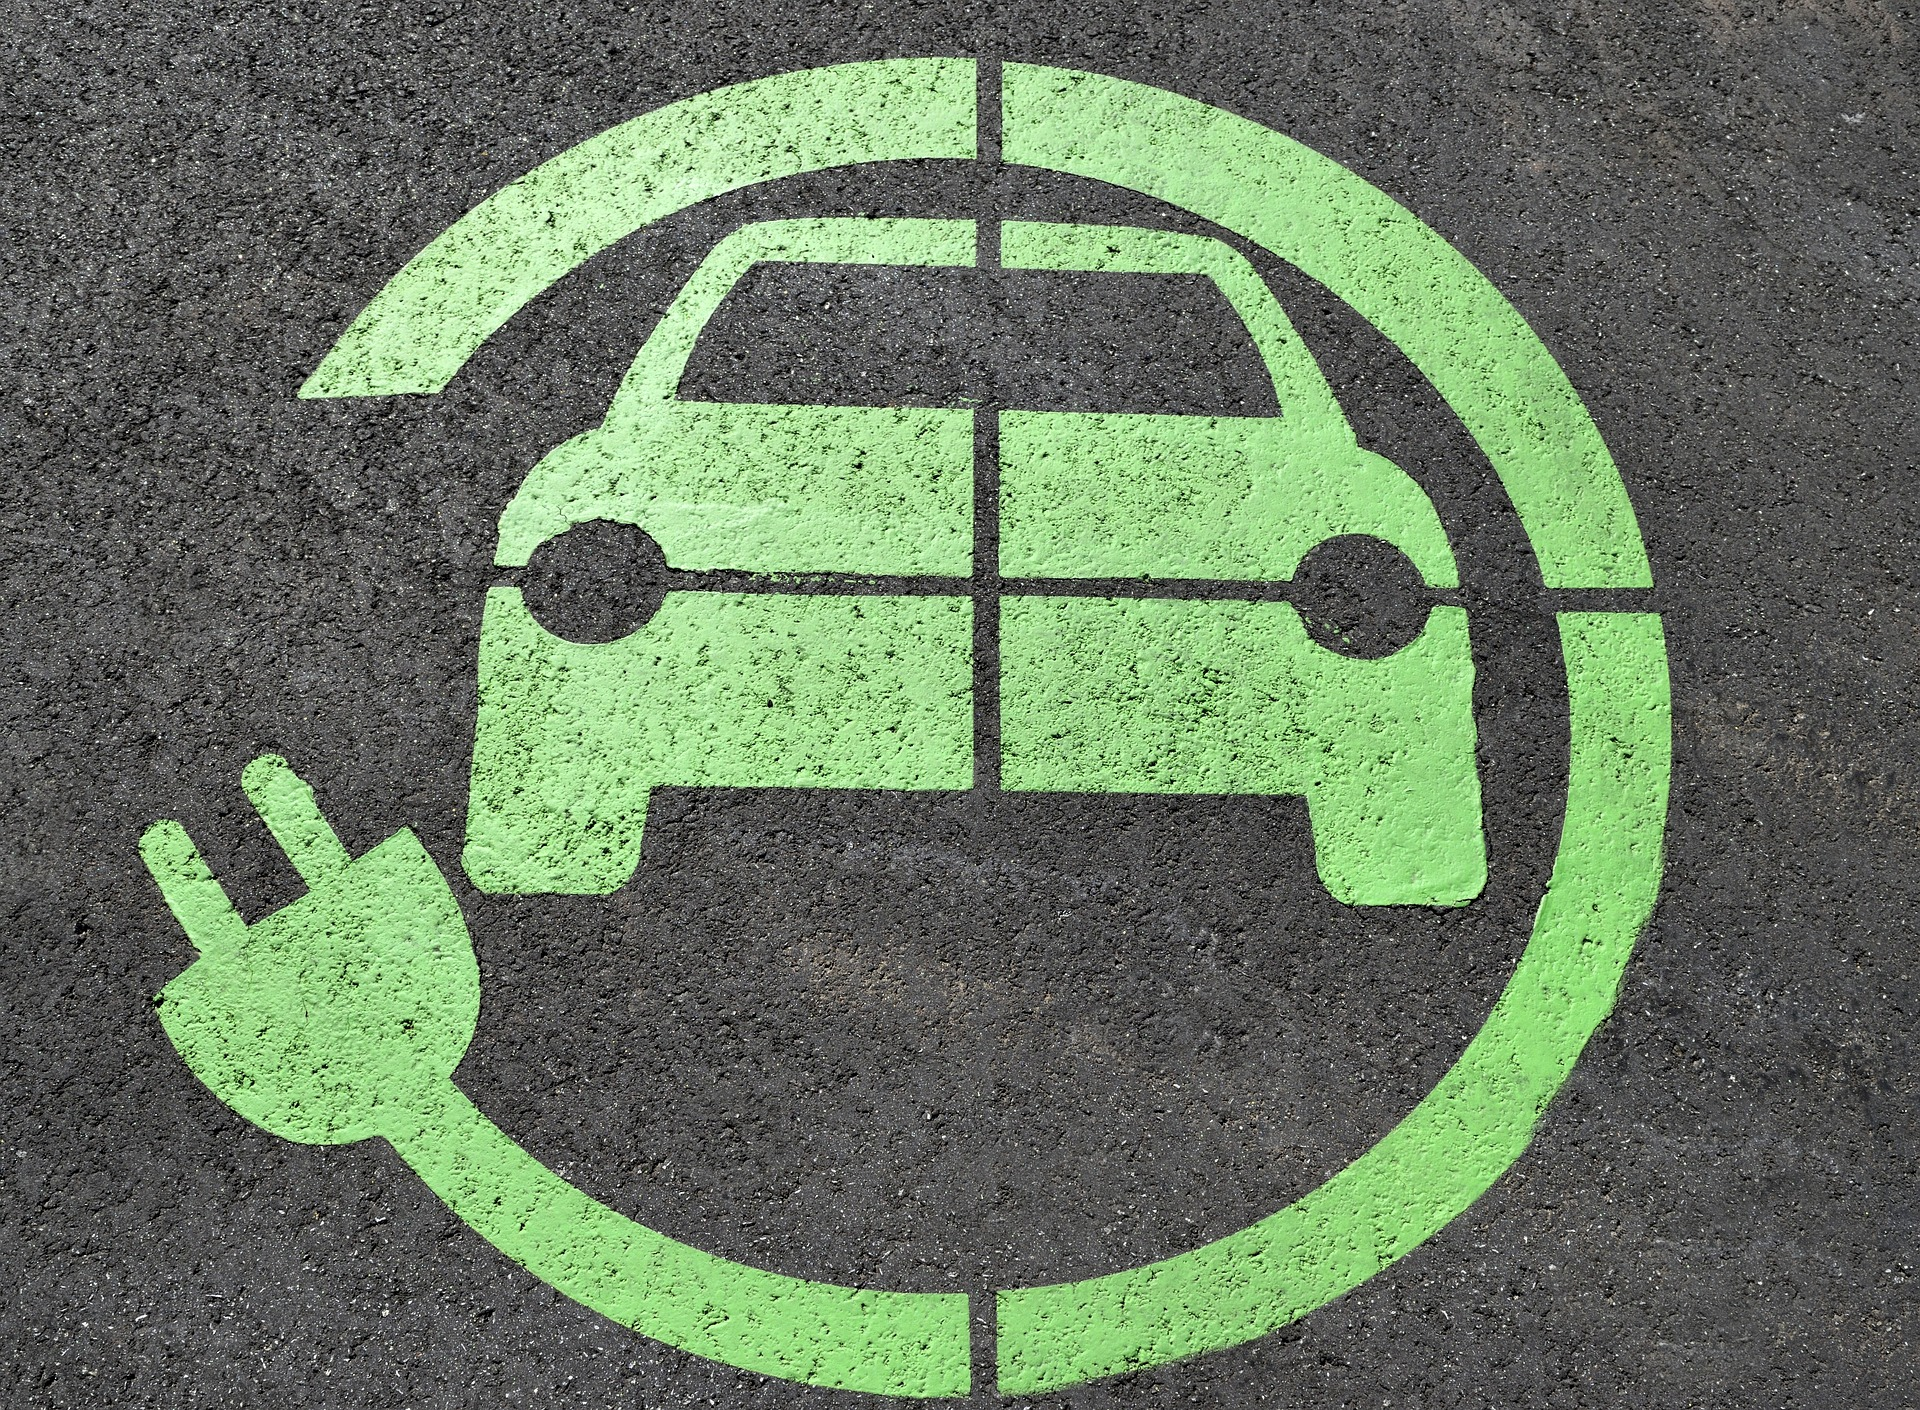 Local Authorities Urged to Apply for Green Transport Funding